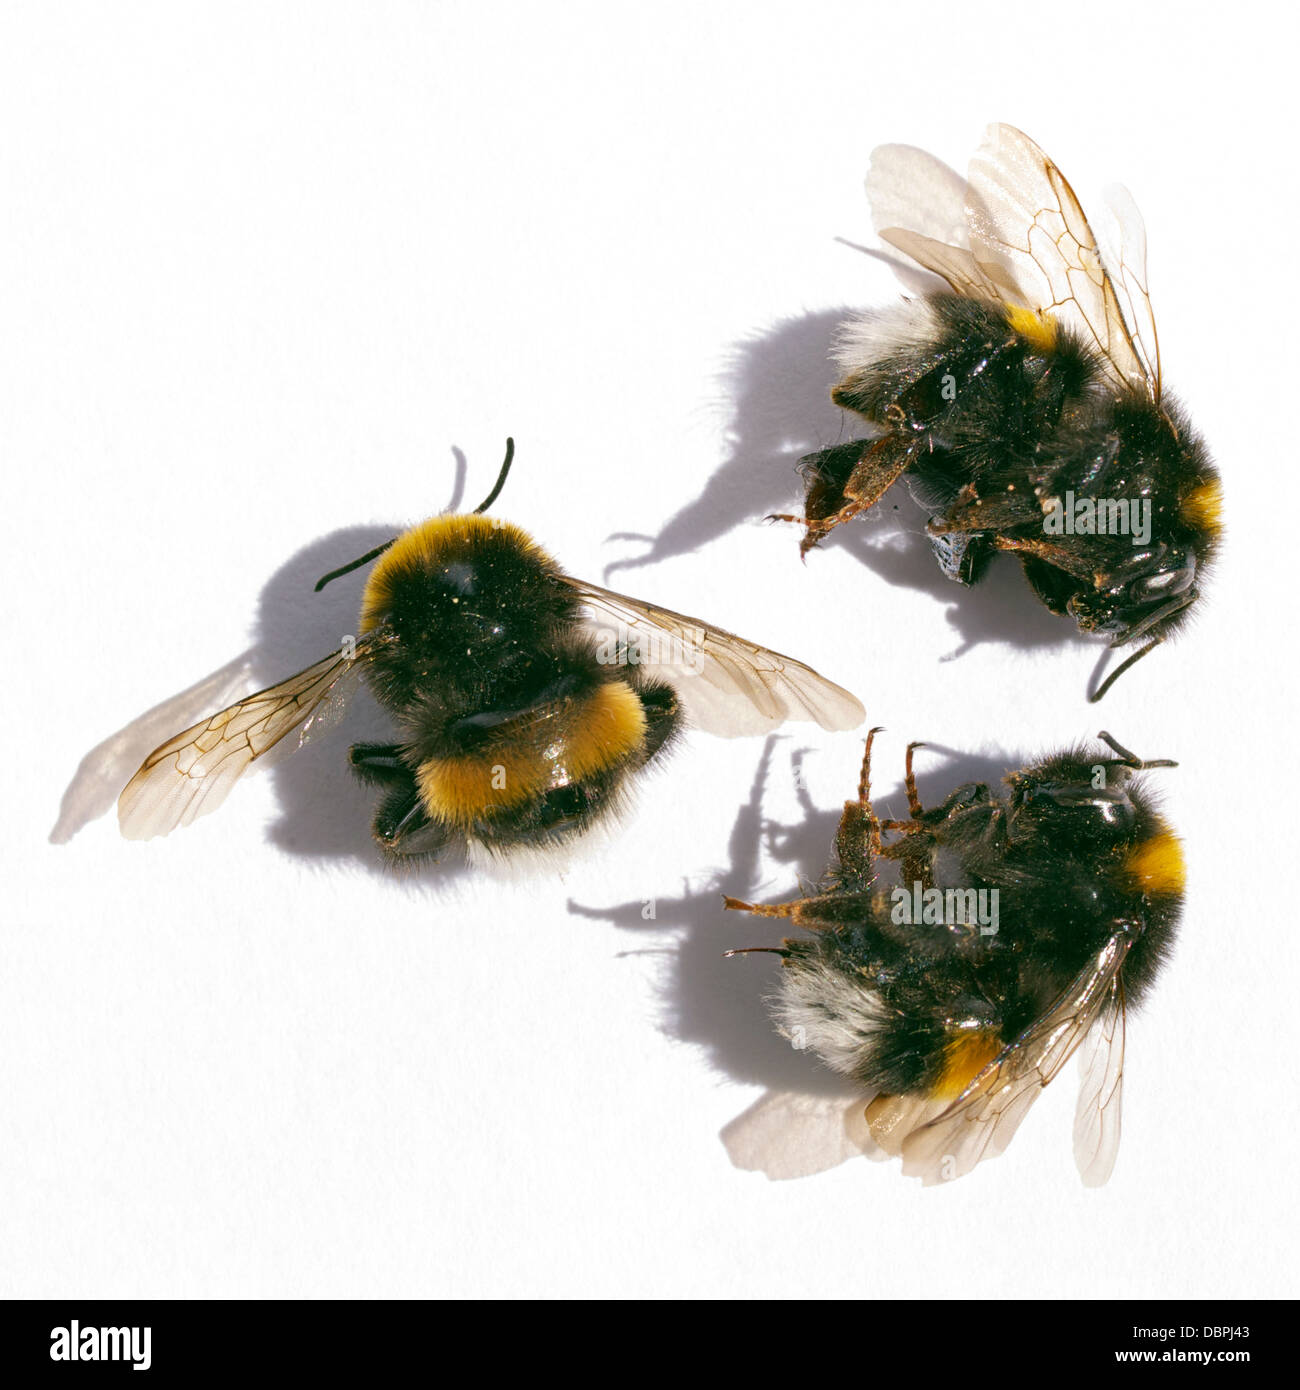 Three dead bees on white background. - Stock Image